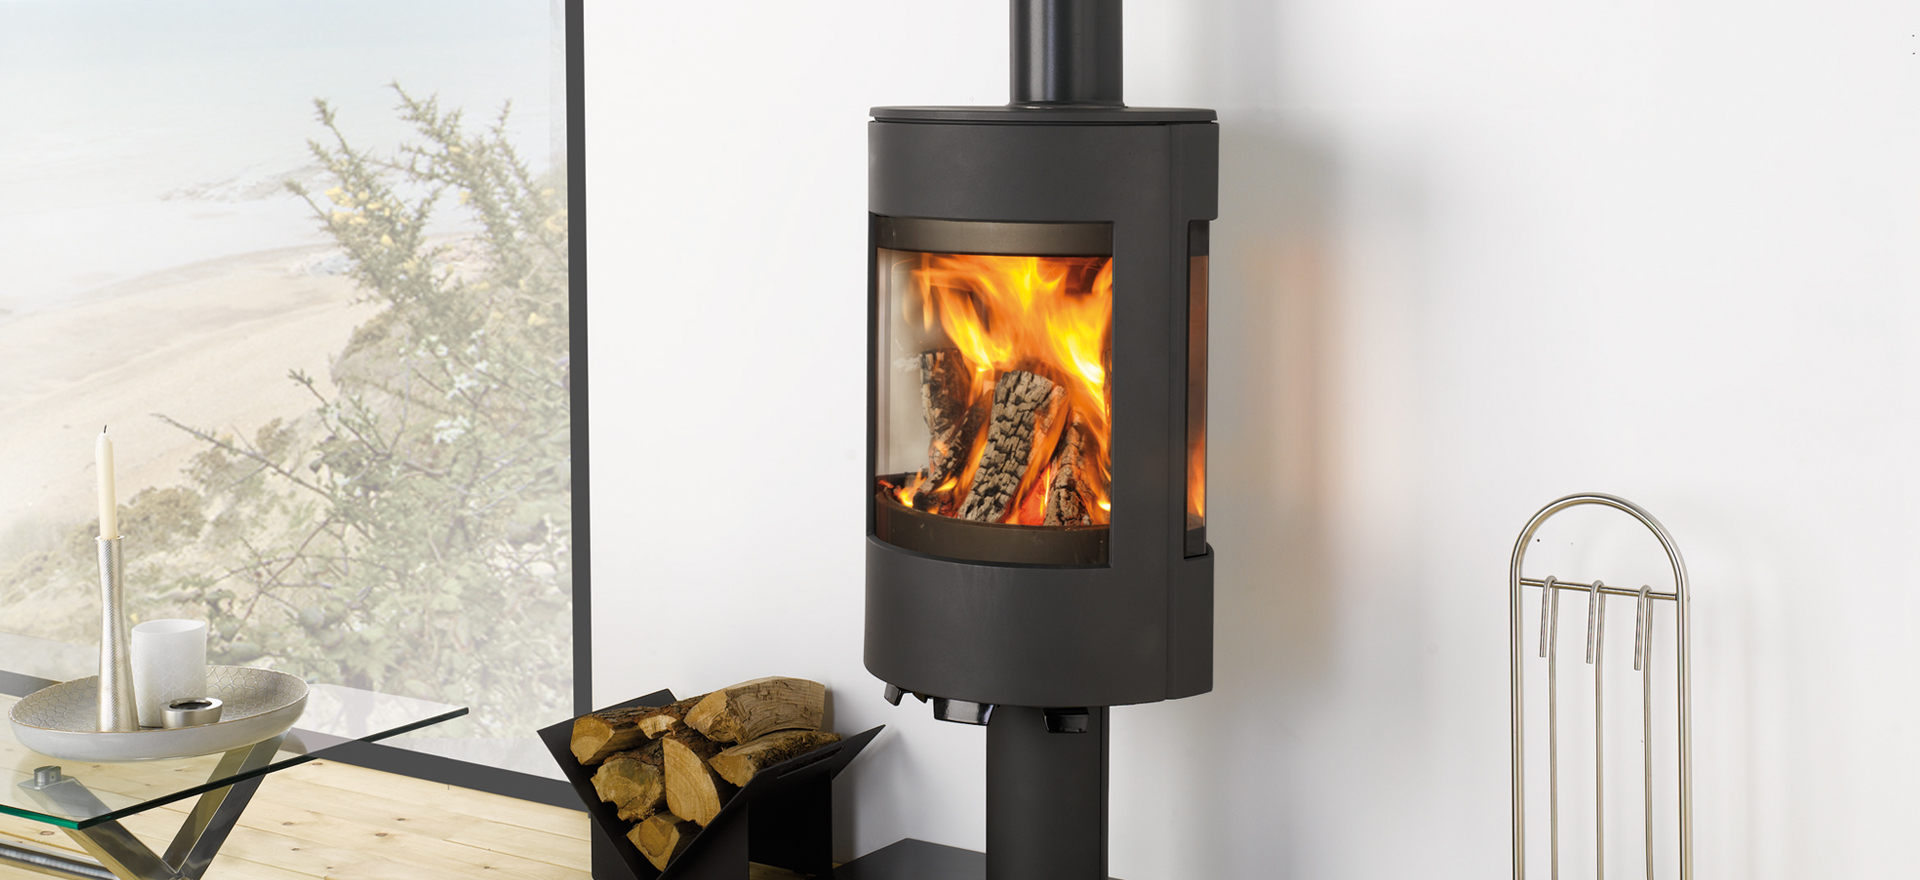 A contemporary wood burner with a Scandinavian twist…